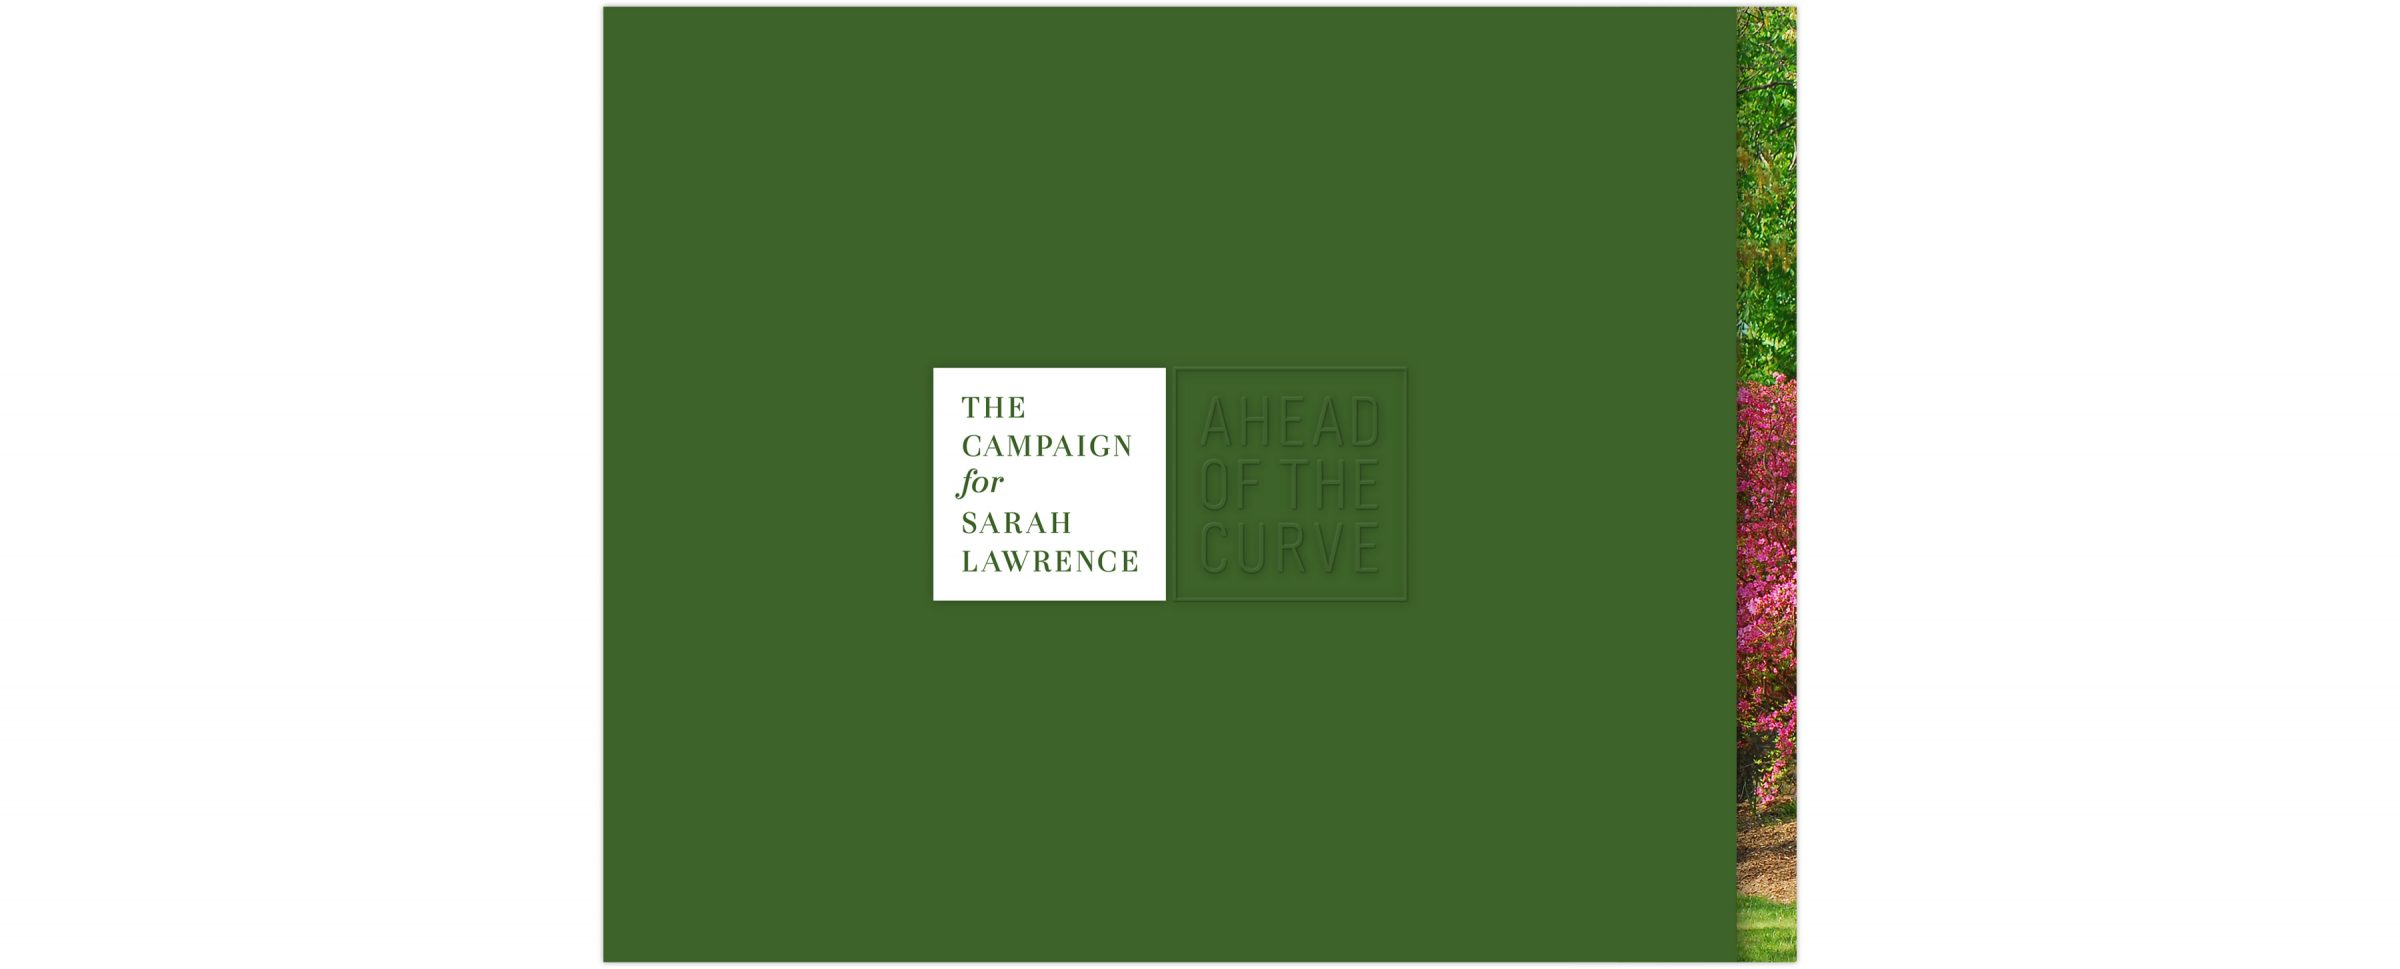 The Campaign for Sarah Lawrence brochure case